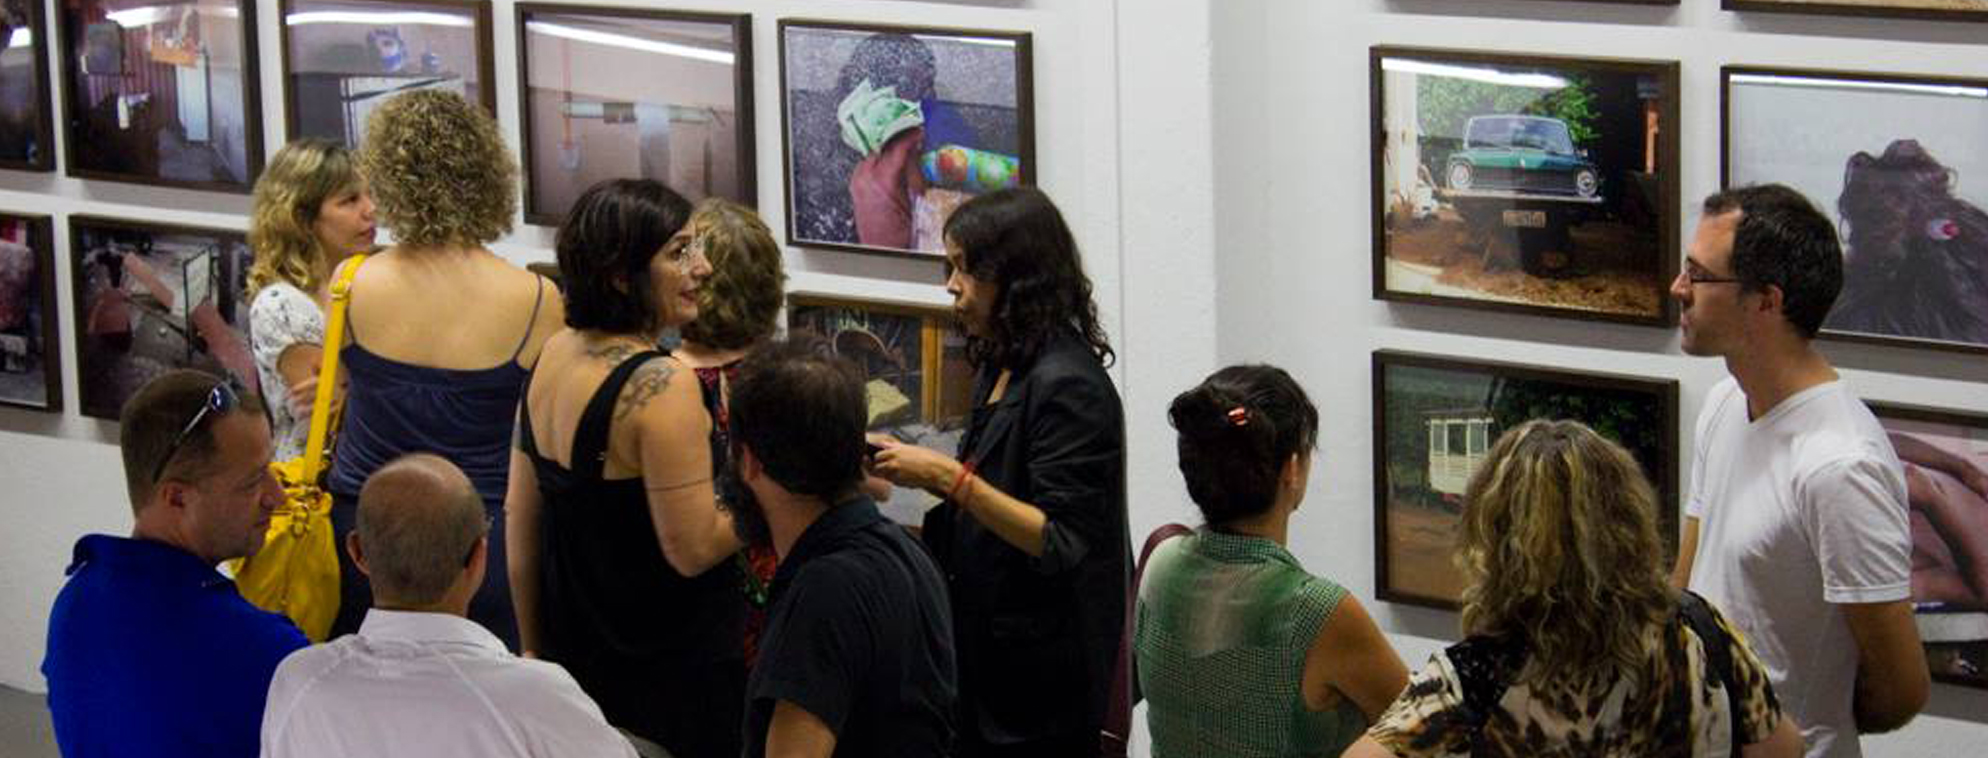 Travessias 3 – Arte Contemporânea na Maré